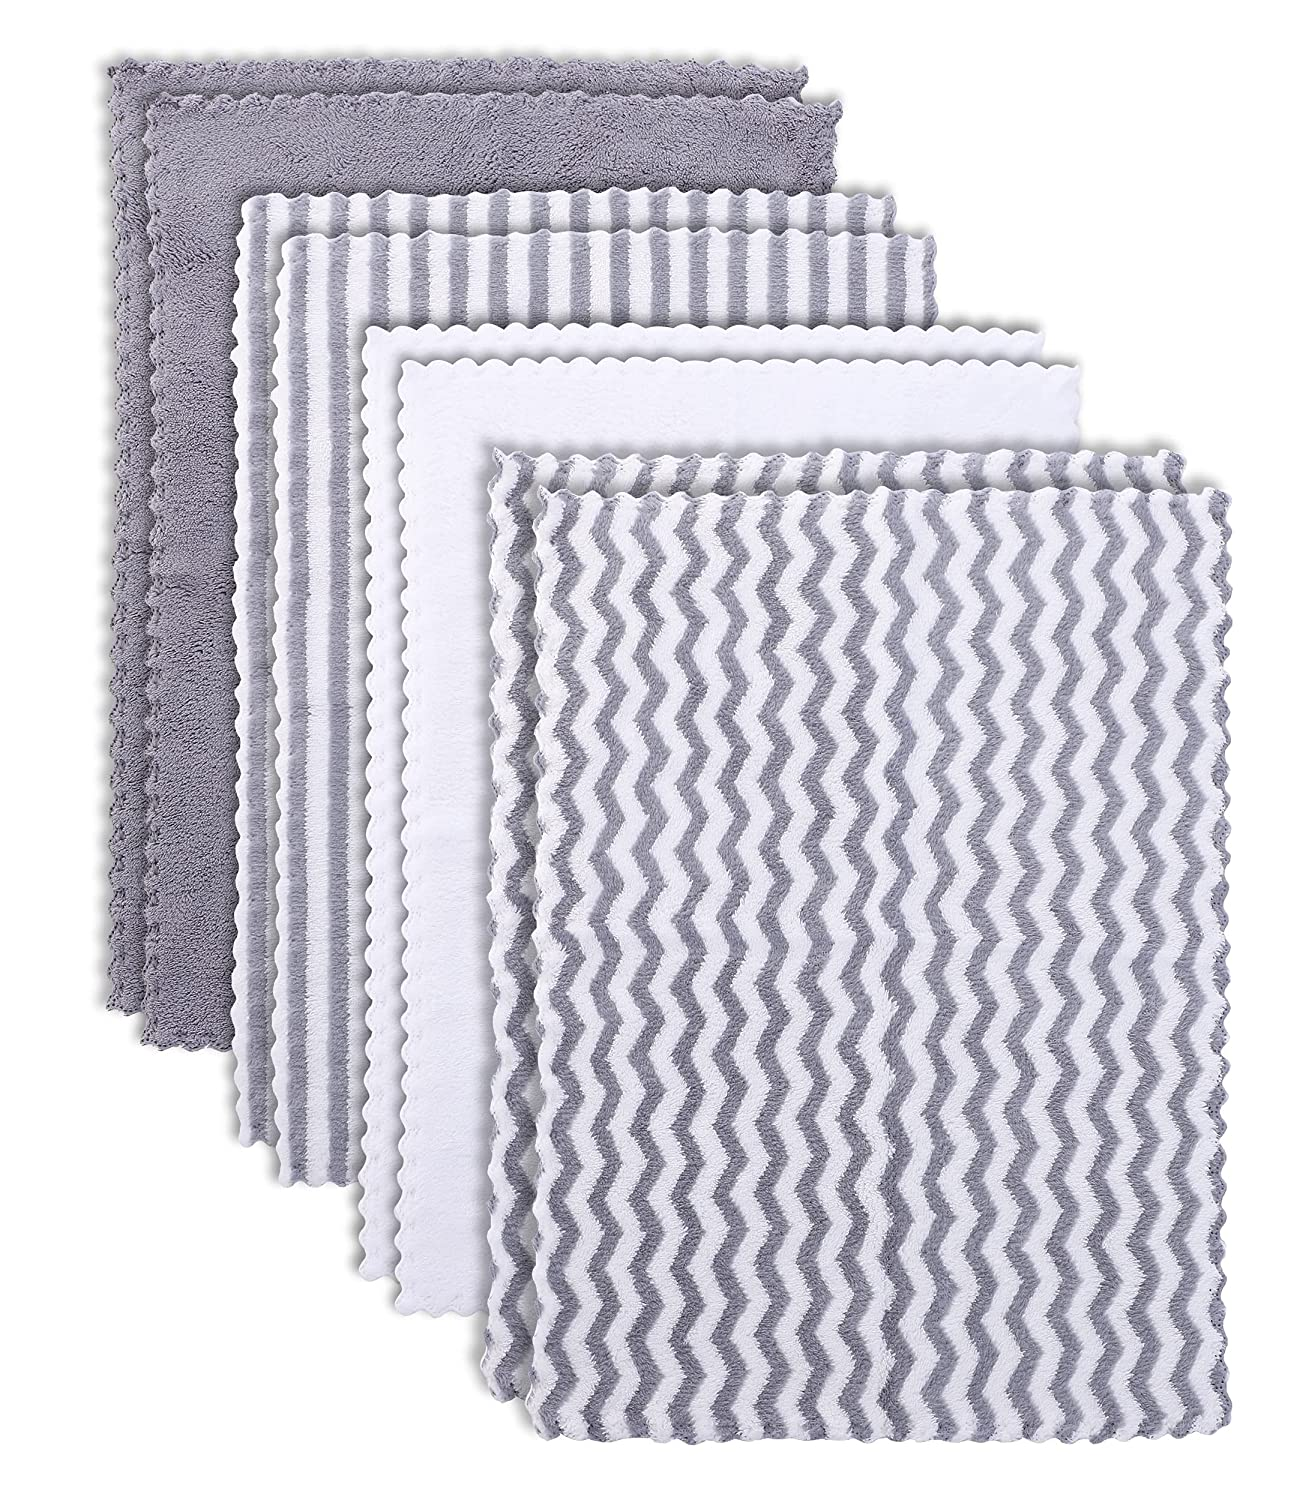 BAMBOO QUEEN 8 Pack Super Soft Baby Burp Cloths, Ultra Absorbent Large Newborn Burping Cloth, Milk Spit Up Rags, Unisex Grey and White, 16 × 12 Inch